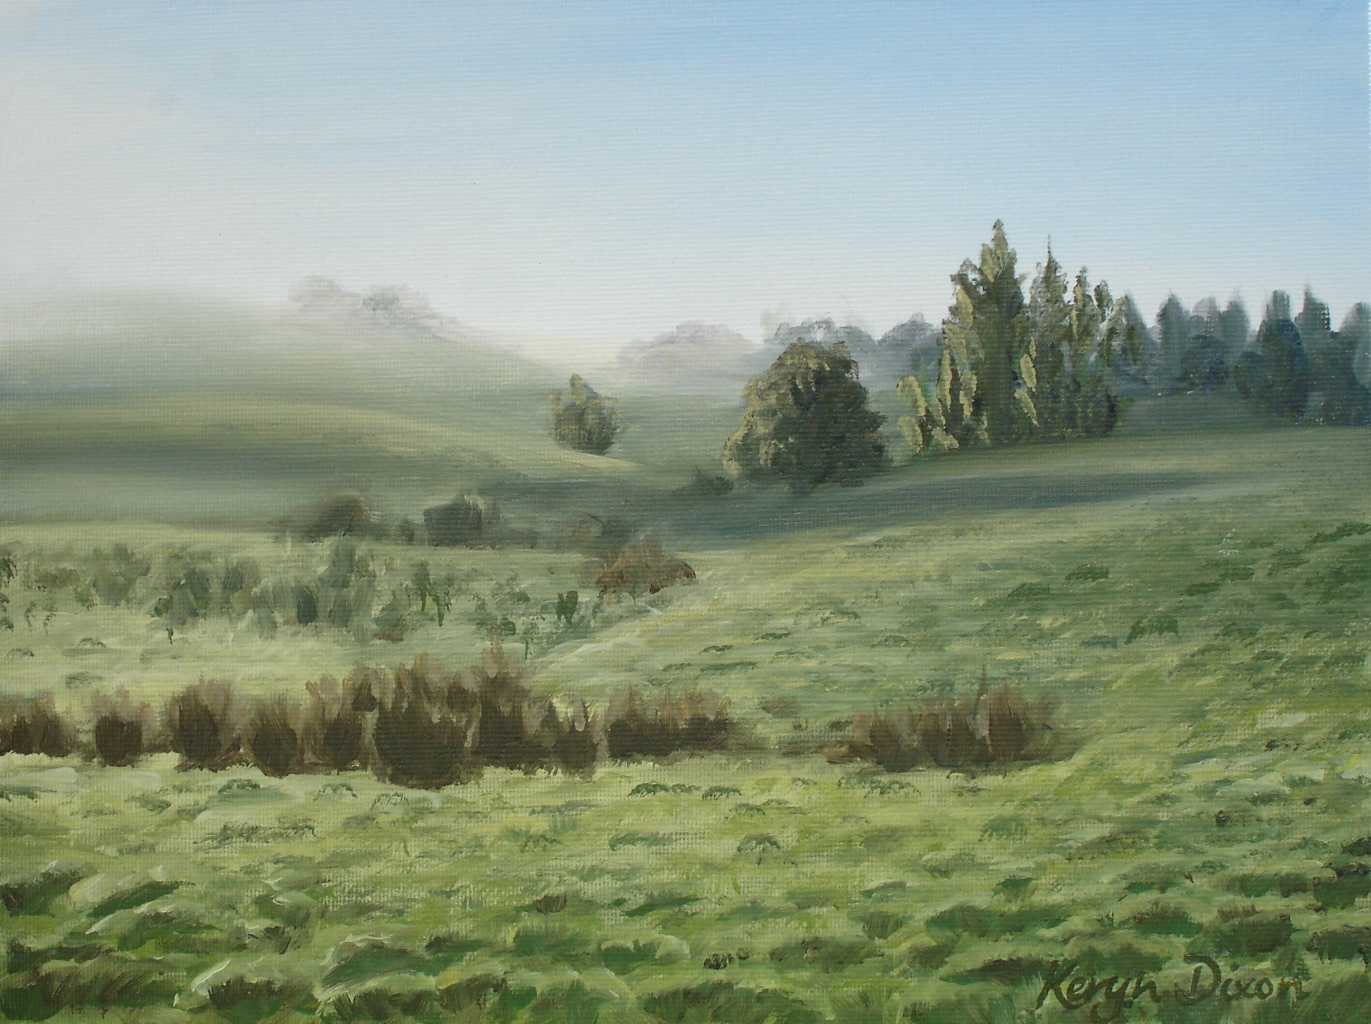 Misty Fields- Oil on Canvas. Original sold, prints available